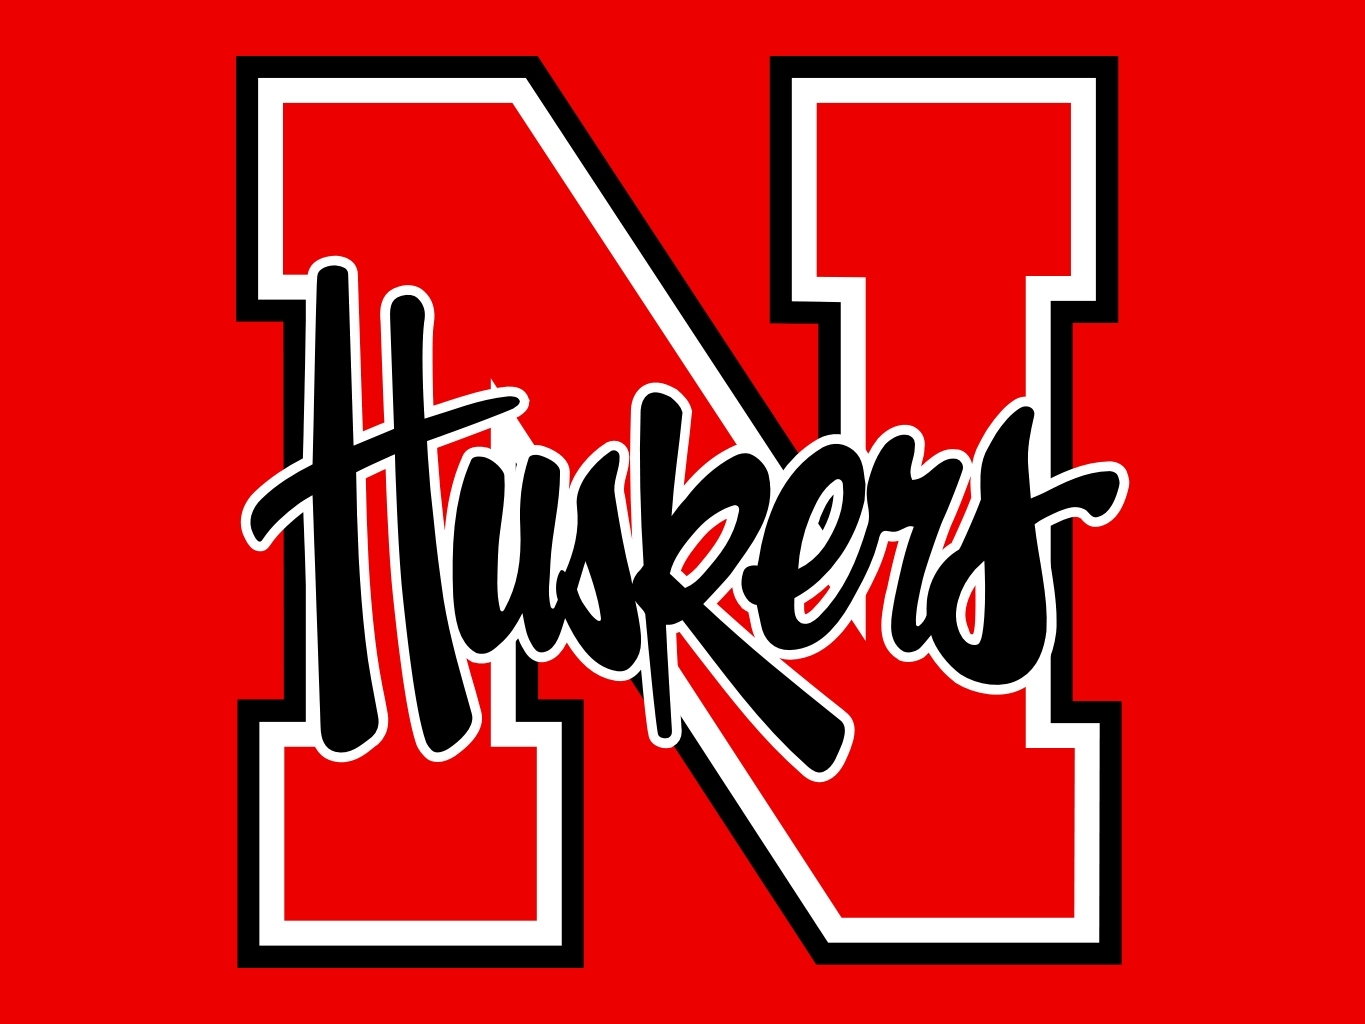 Free download Download image Nebraska Cornhuskers Football.